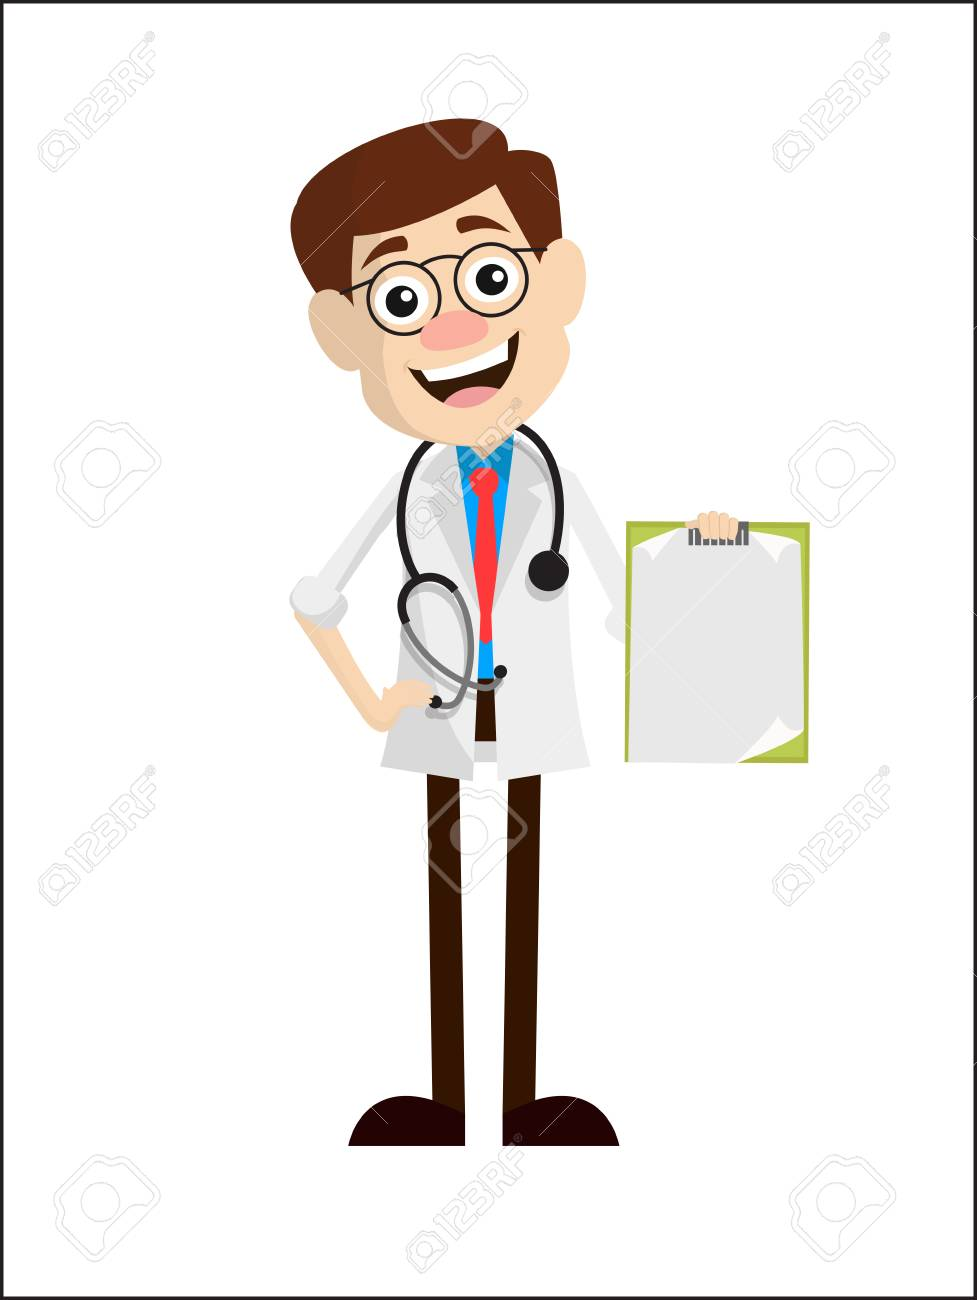 Dermatologist Clipart : dermatologist, clipart, Dermatologist, Doctor, Showing, Cardboard, Vector, Royalty, Cliparts,, Vectors,, Stock, Illustration., Image, 102644562.